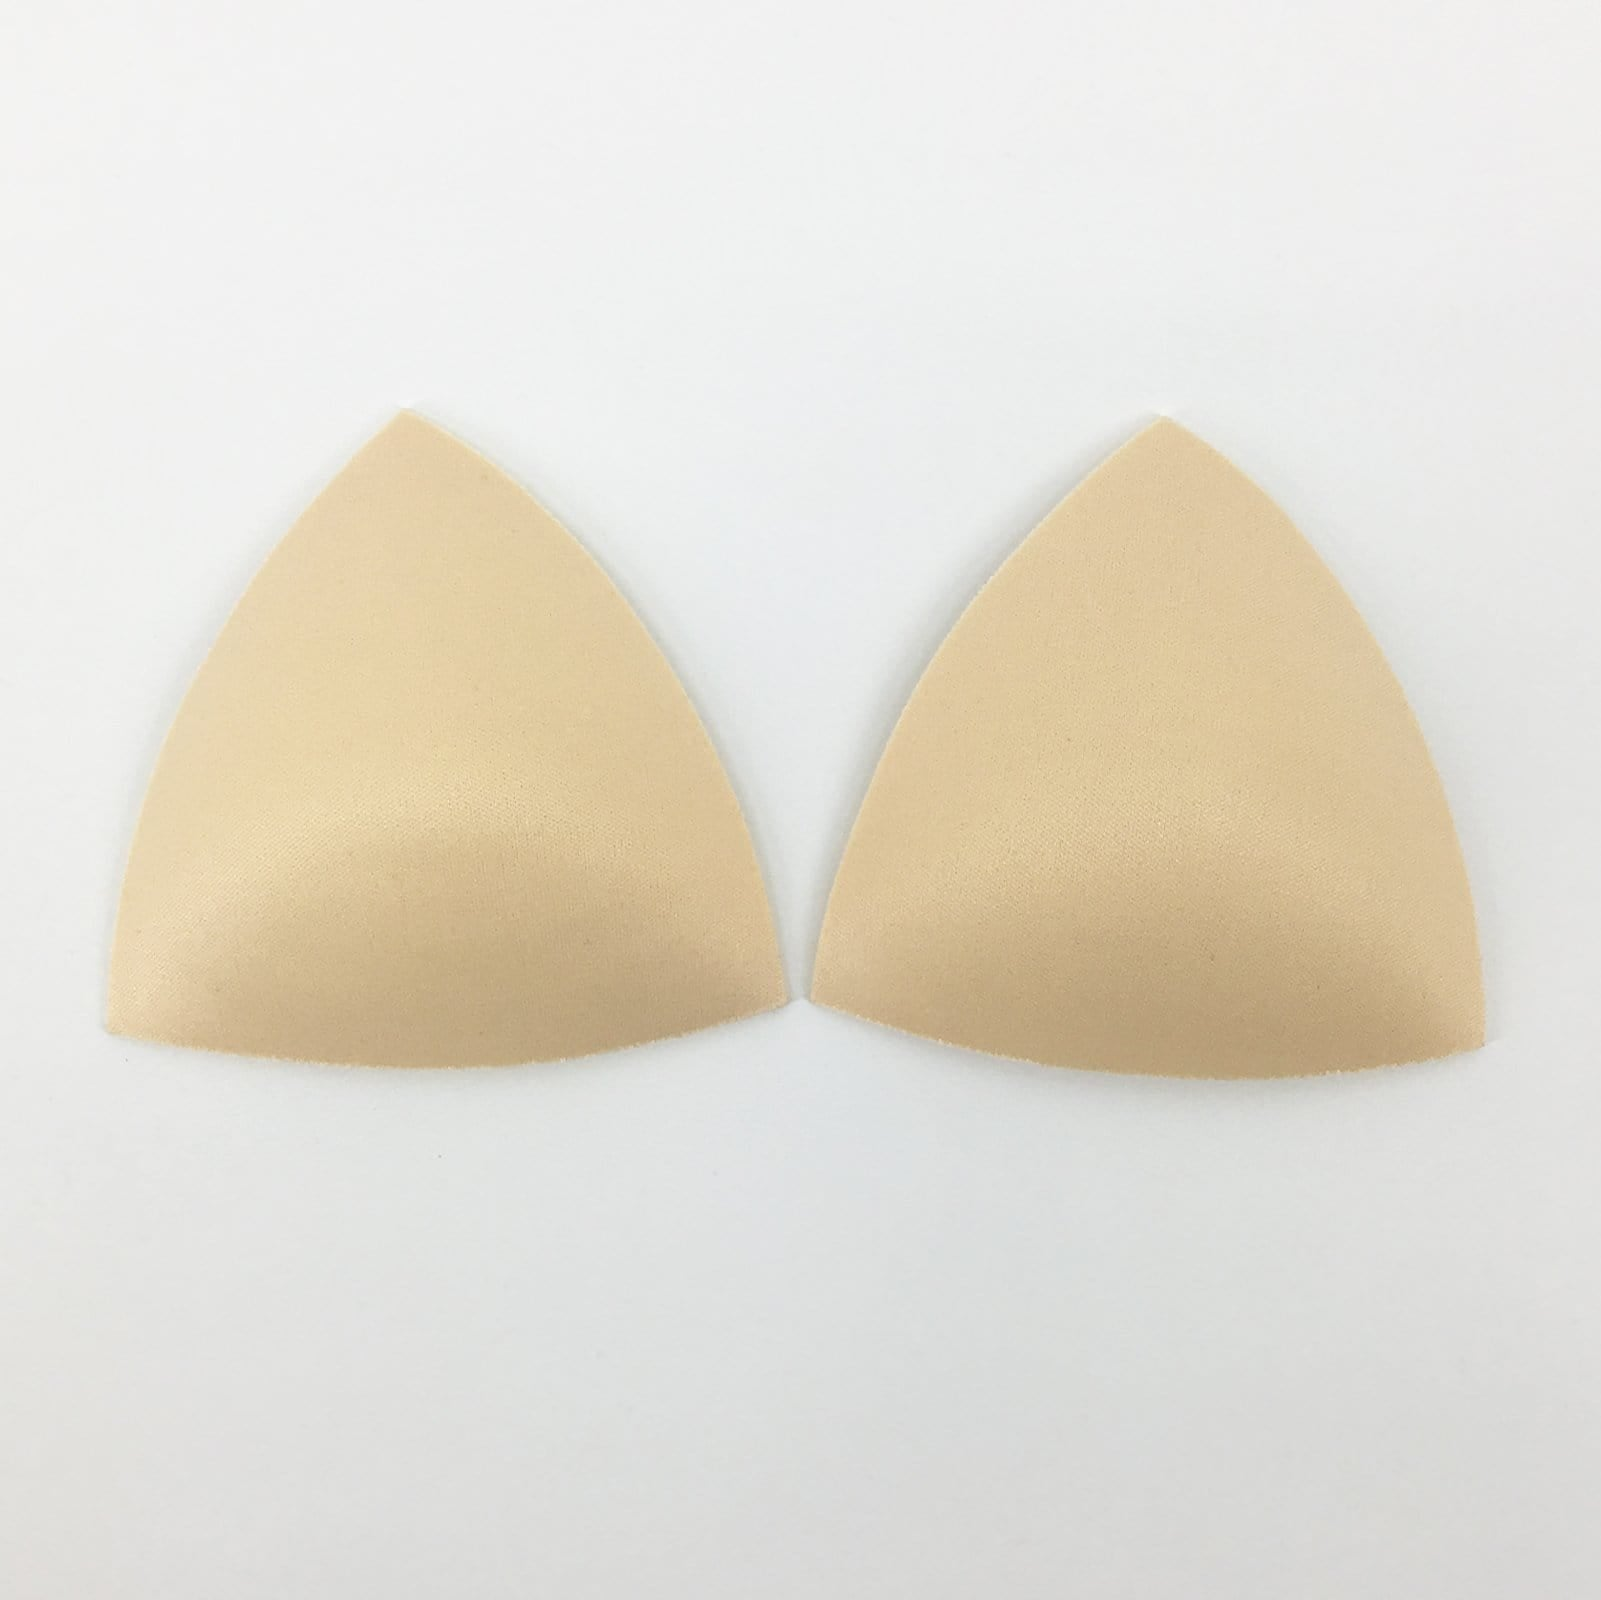 Triangle Push-Up Bra Padding Inserts In Nude - FUNFIT